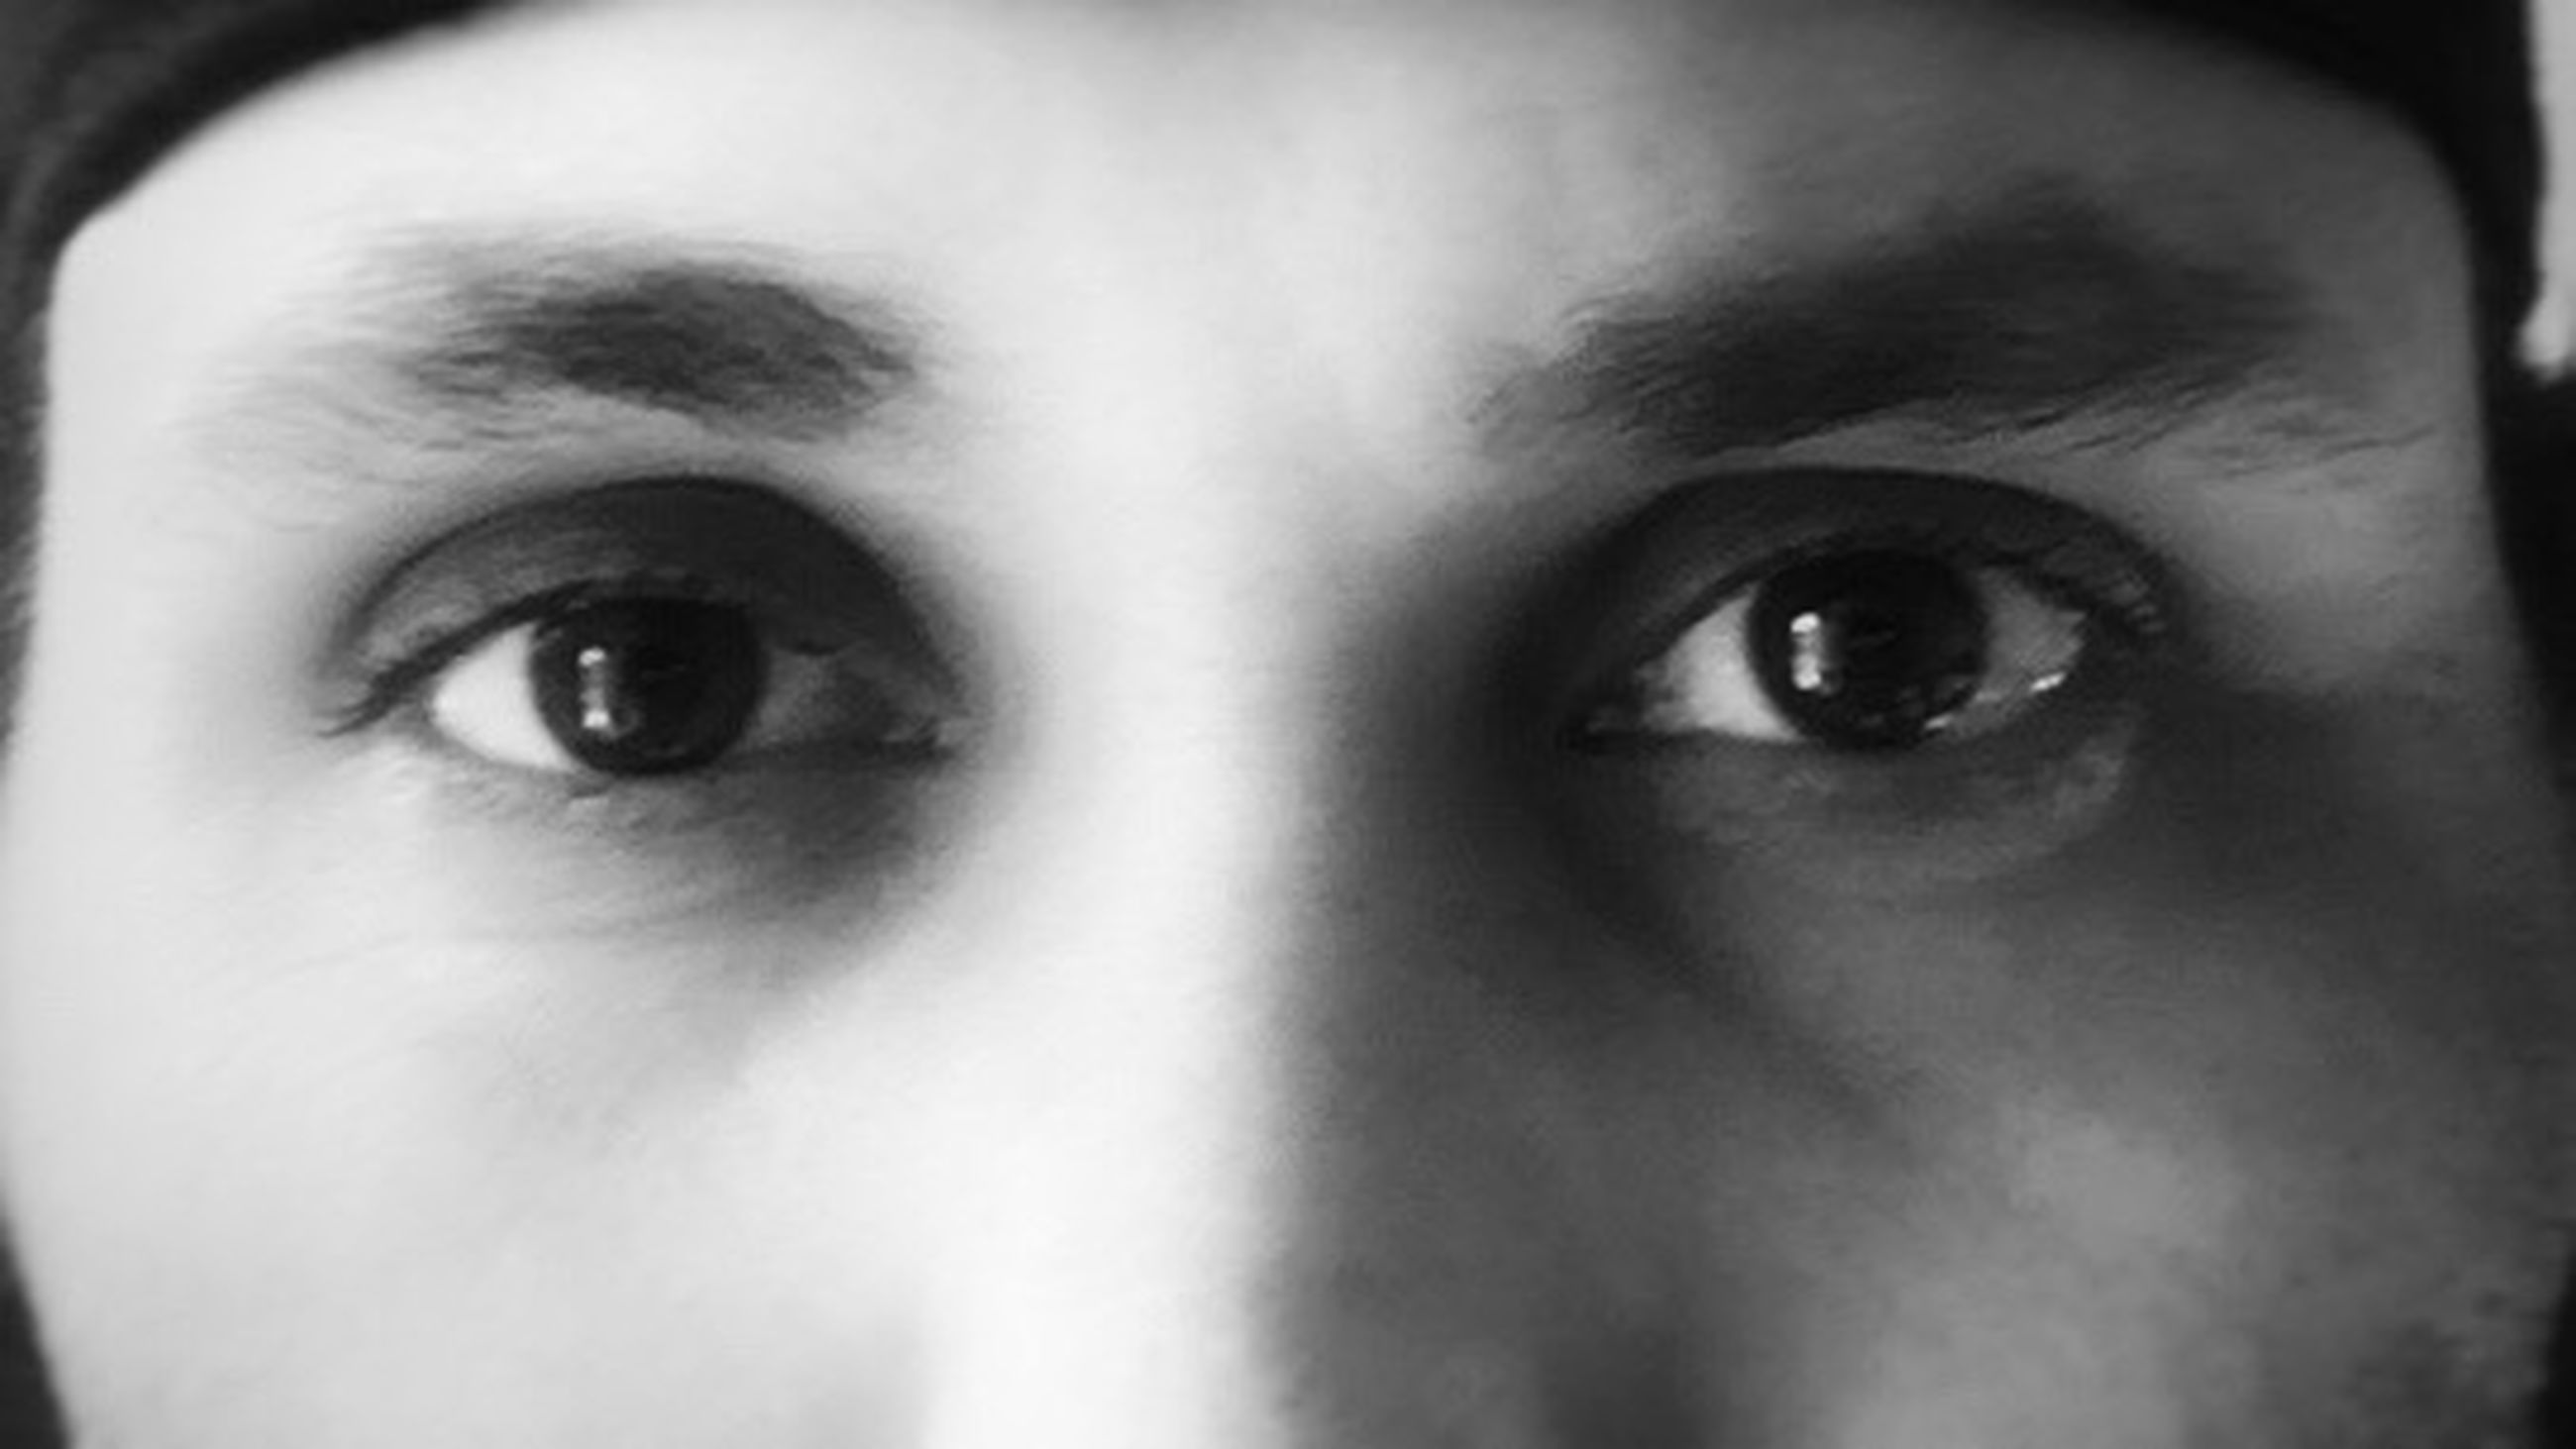 human body part, body part, human face, one person, portrait, human eye, looking at camera, close-up, eye, young adult, front view, adult, fear, women, indoors, eyebrow, emotion, eyesight, contemplation, beautiful woman